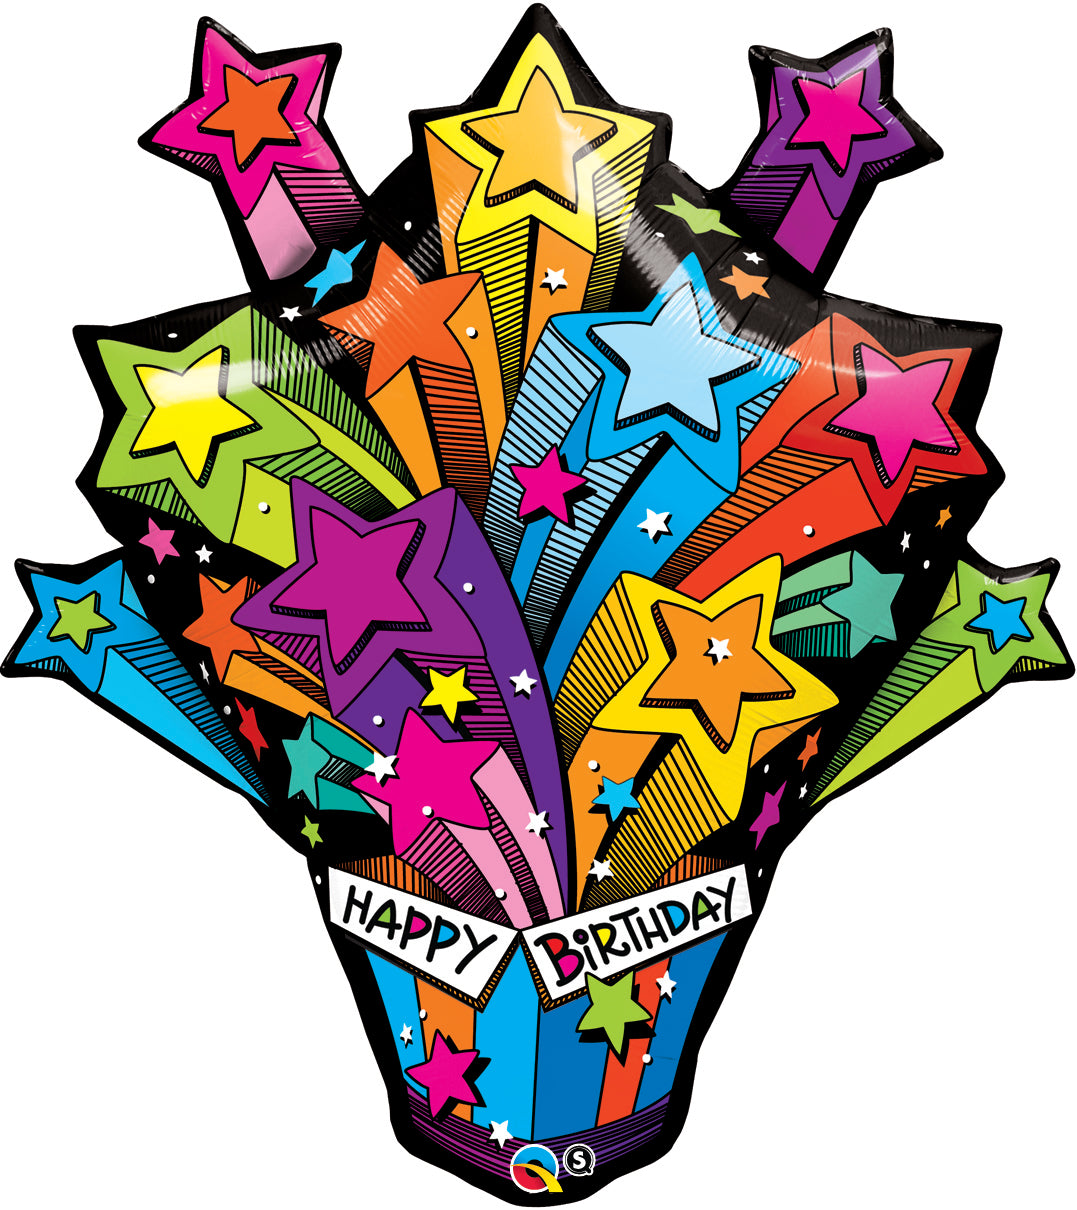 Shooting Stars Birthday Present 35 inch Shaped Foil